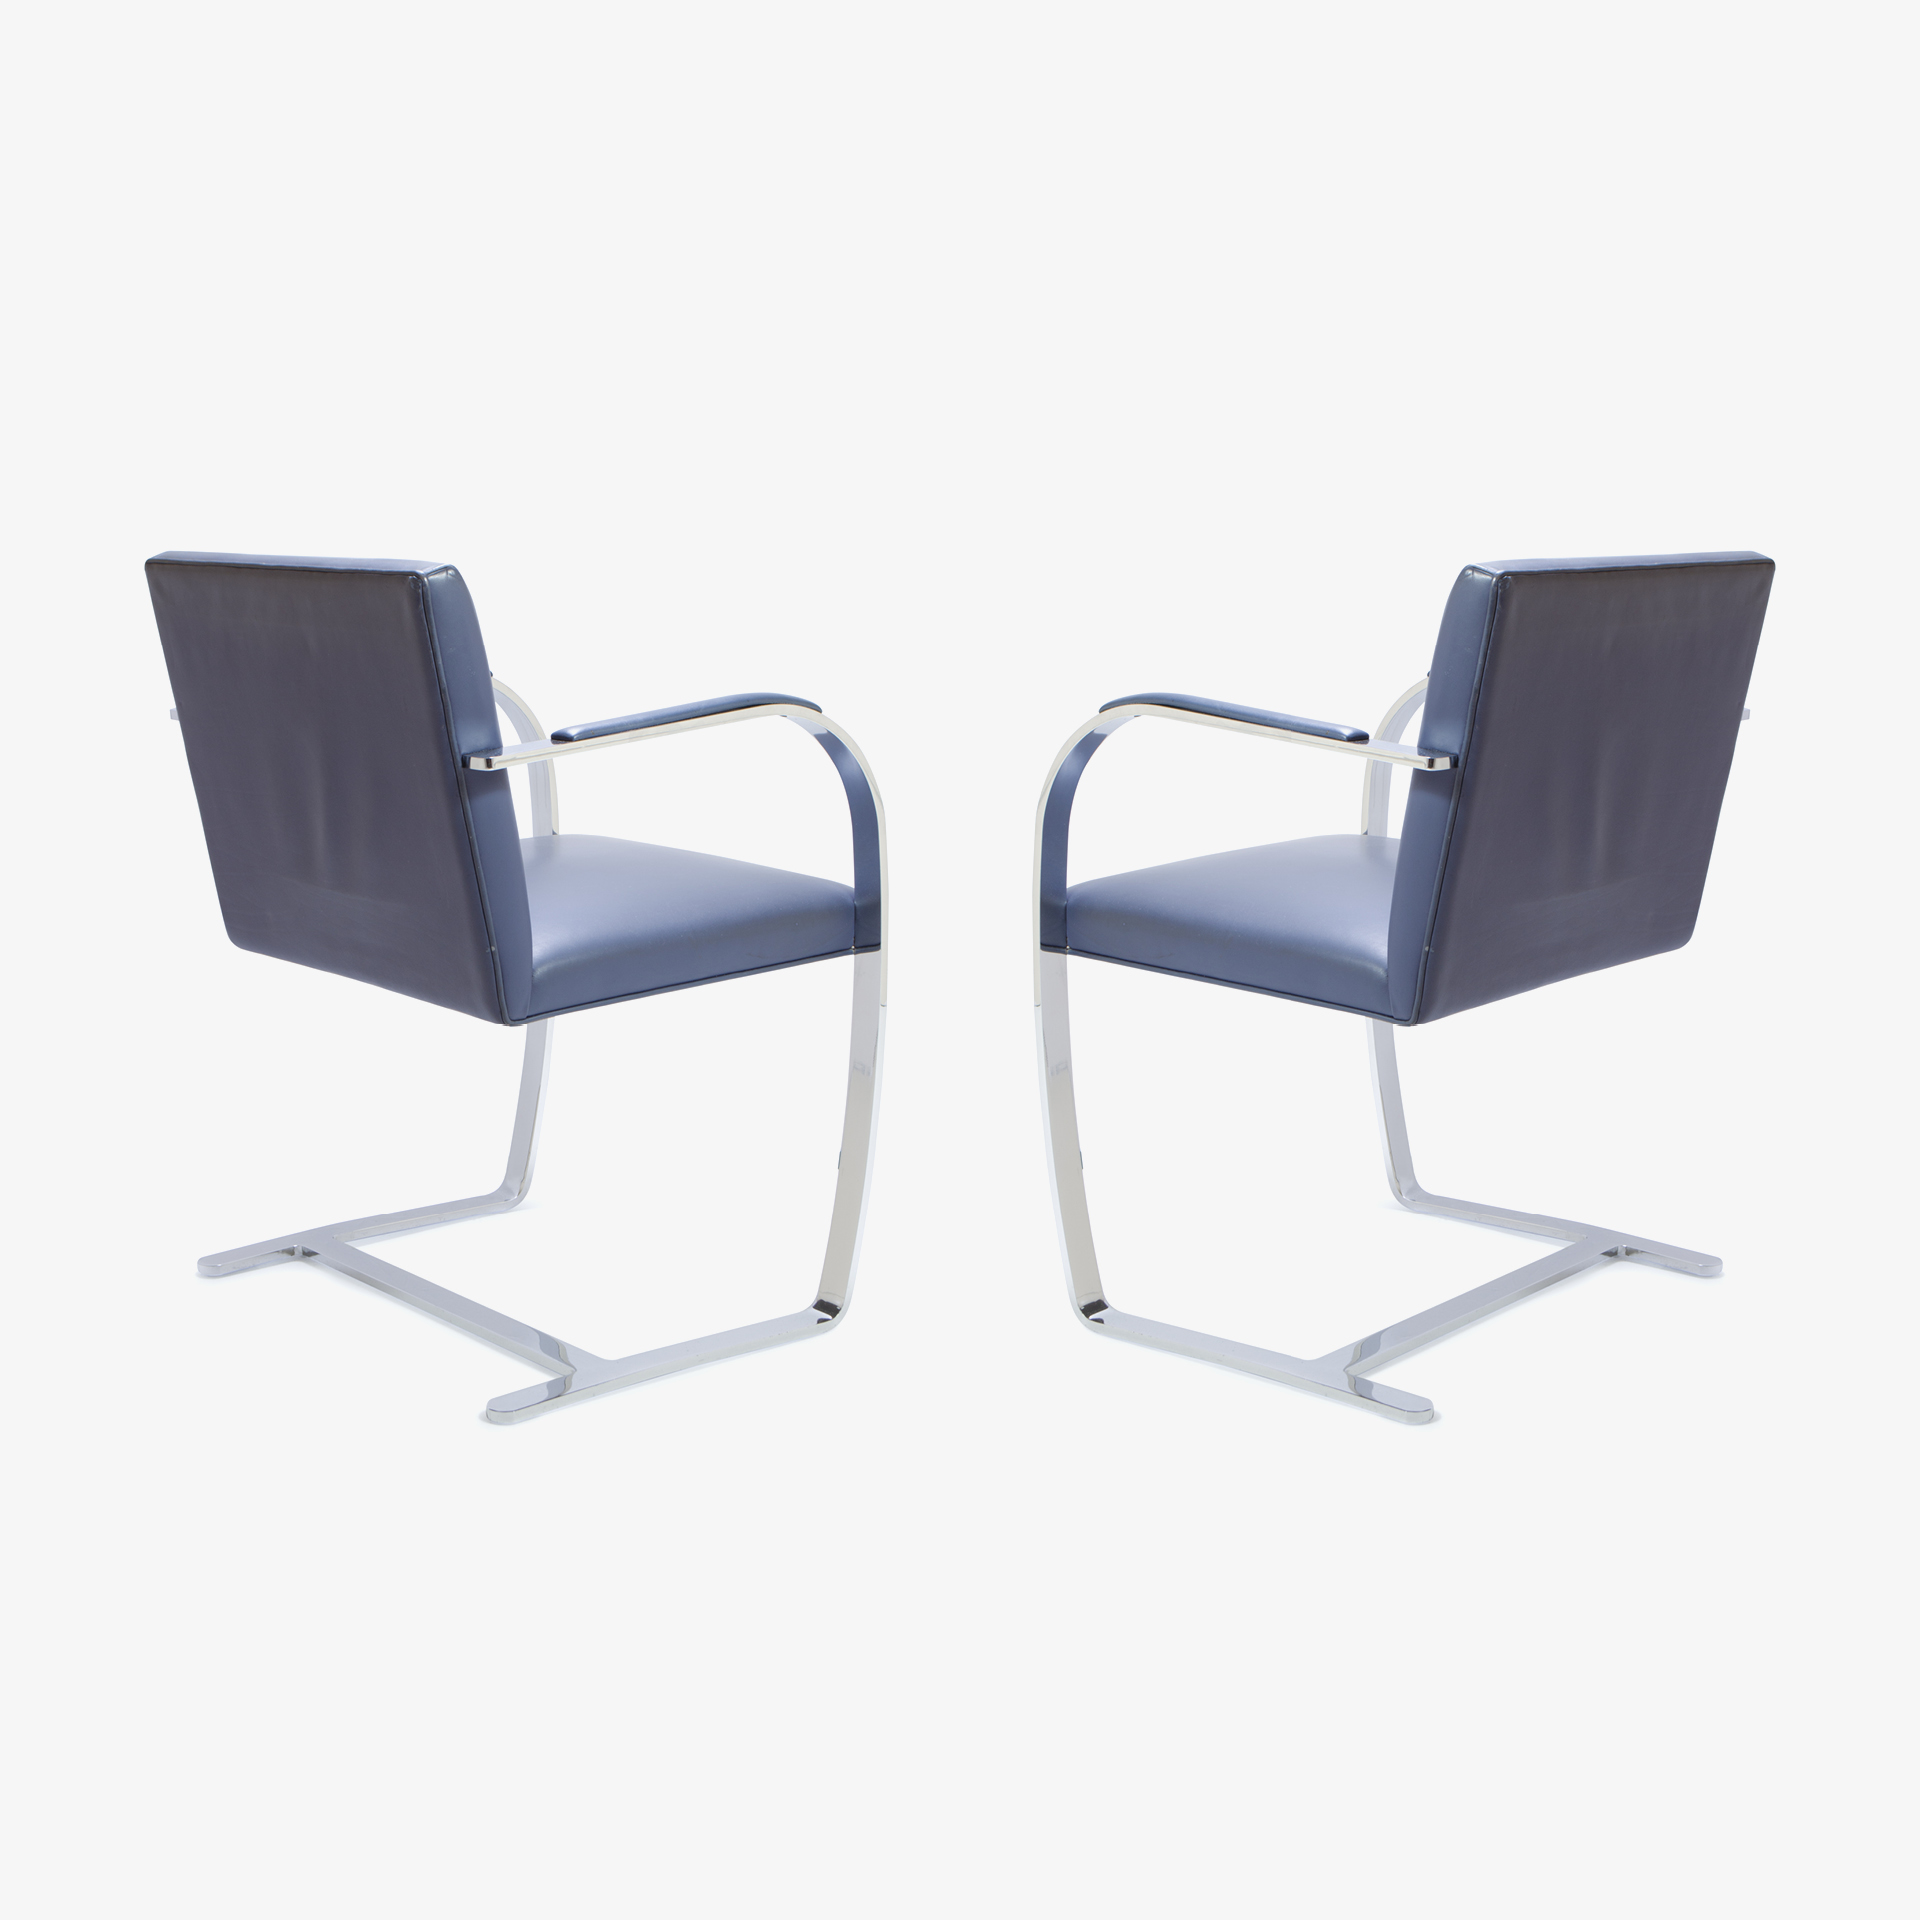 Brno Chairs in Navy Leather4.jpg